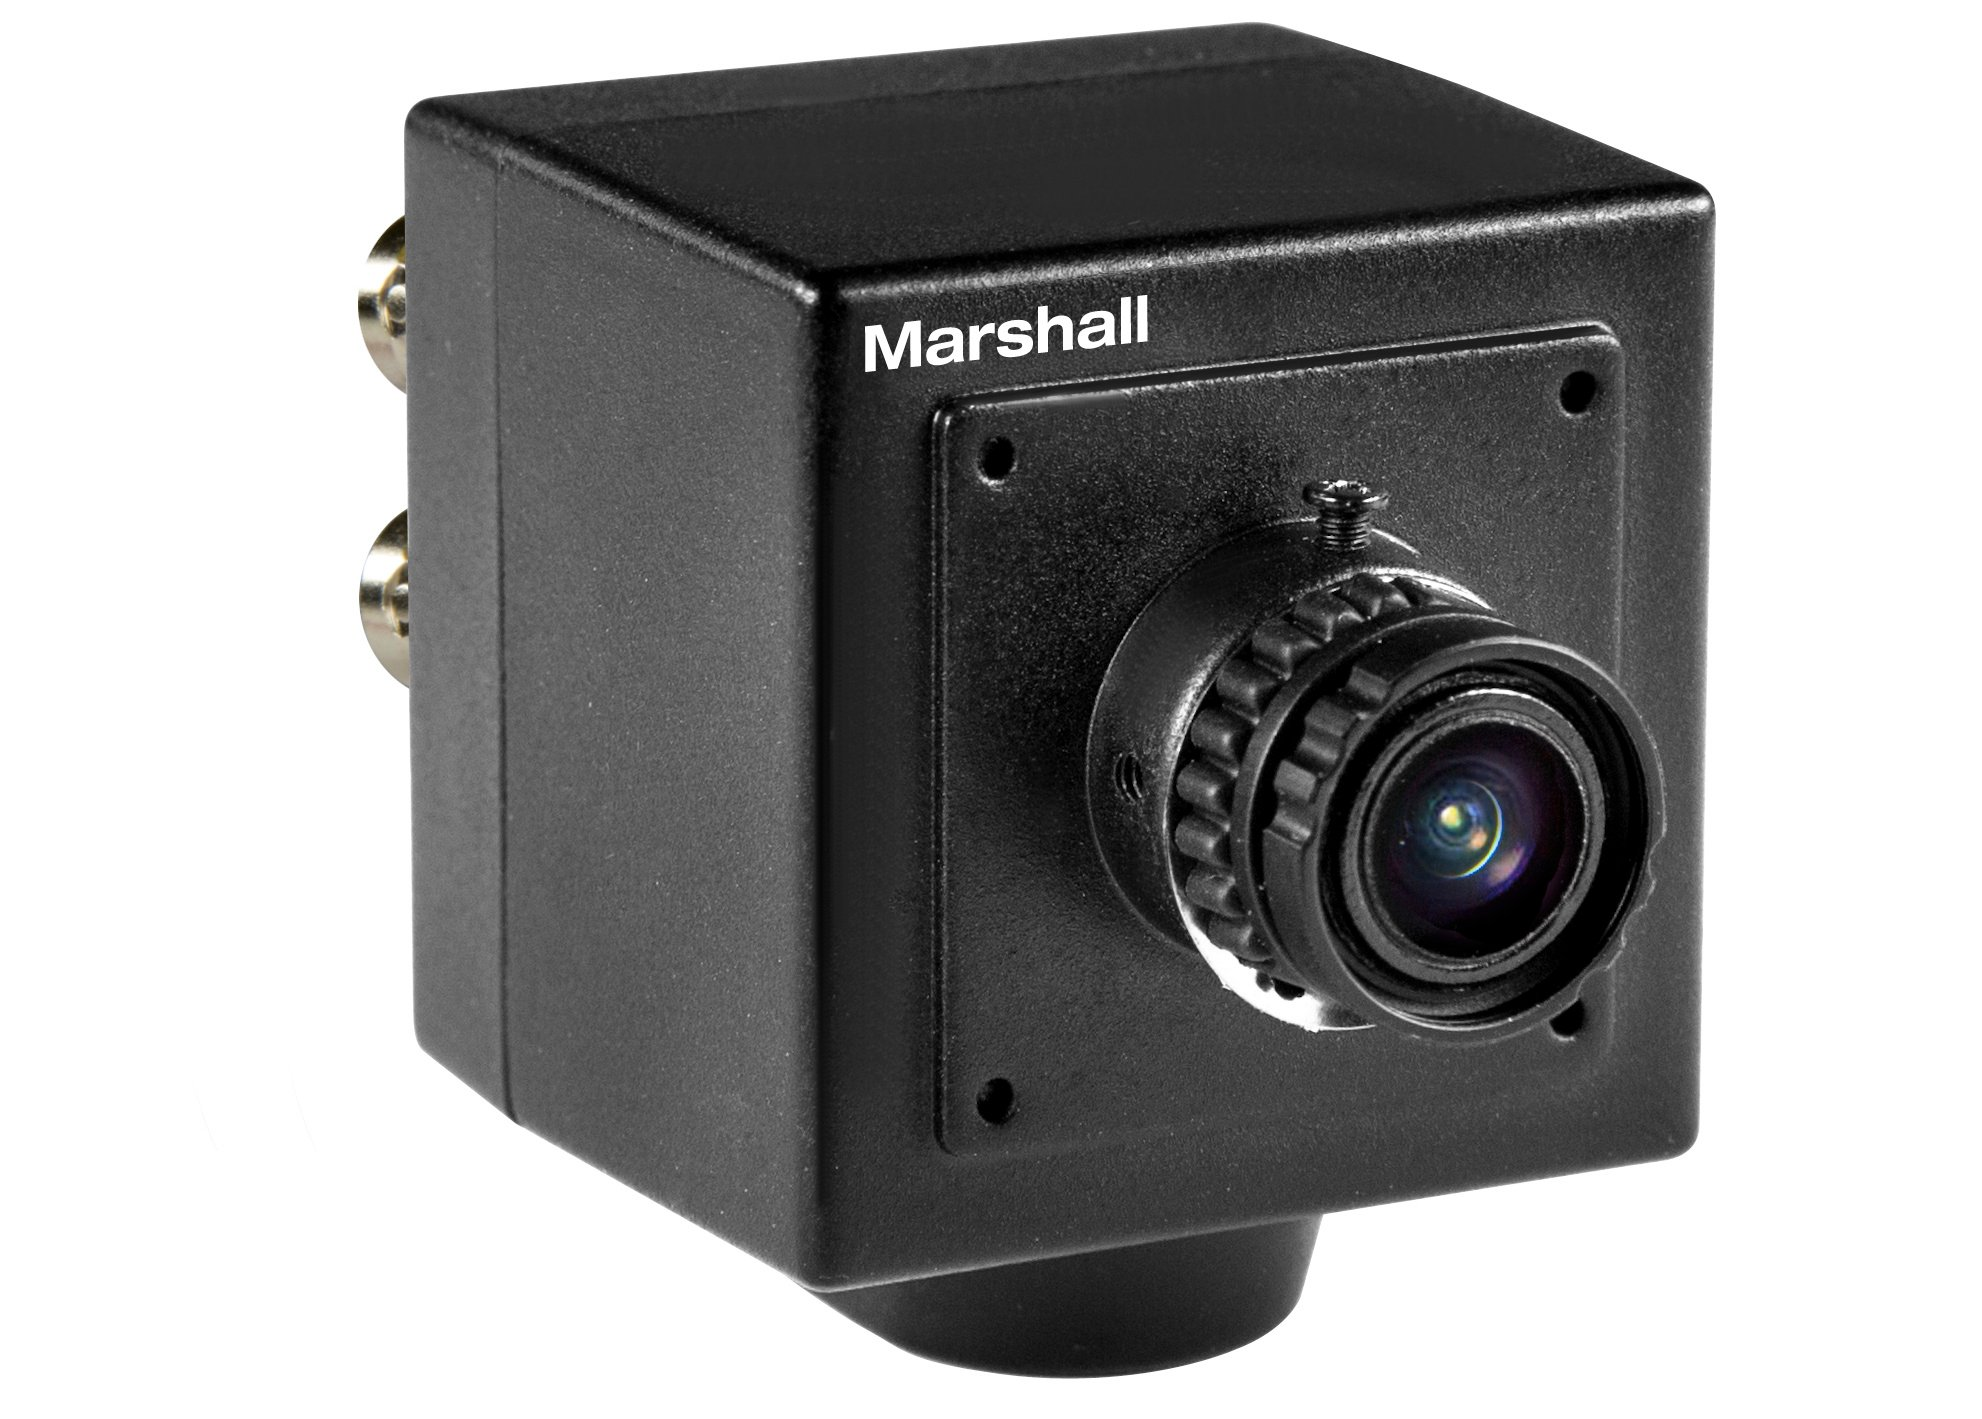 2.5MP 60 FPS Non-Broadcast Mini Camera with 3.7mm Lens